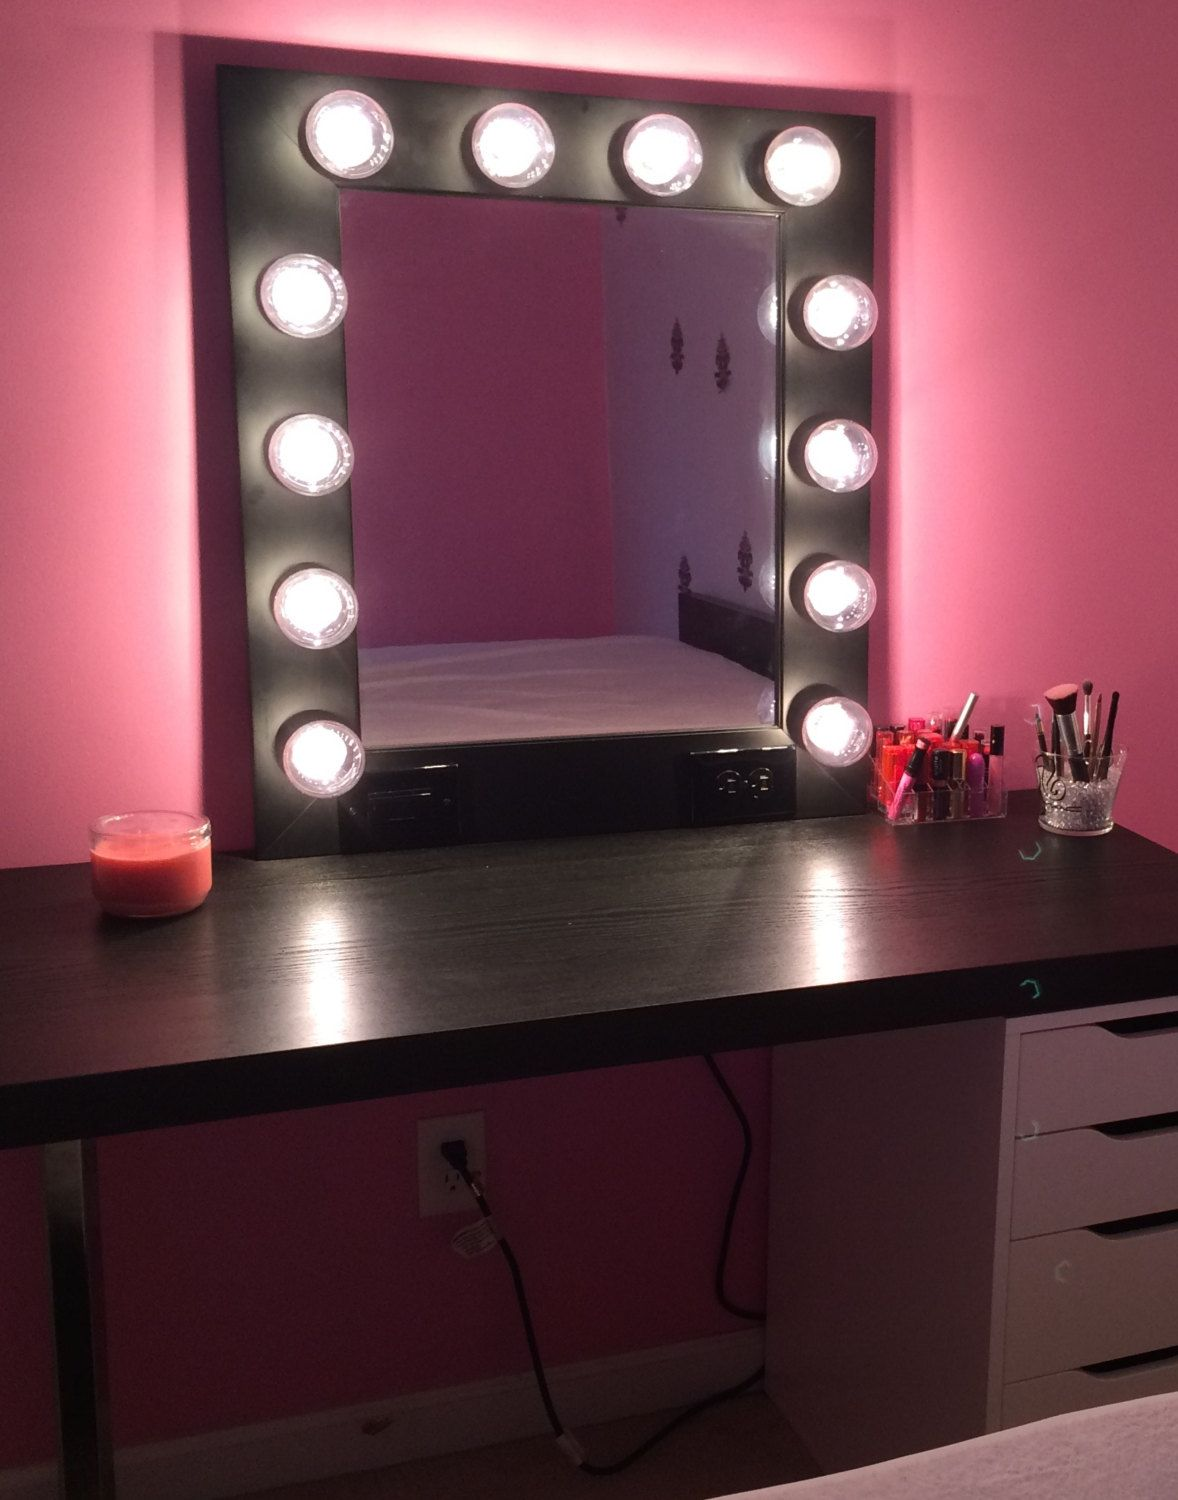 Wonderful Vanity Makeup Mirror With Lights  Available Built In Digital LED Dimmer And  Power Outlet  Plug It In, Watch It Light Up! By CustomVanity On Etsy